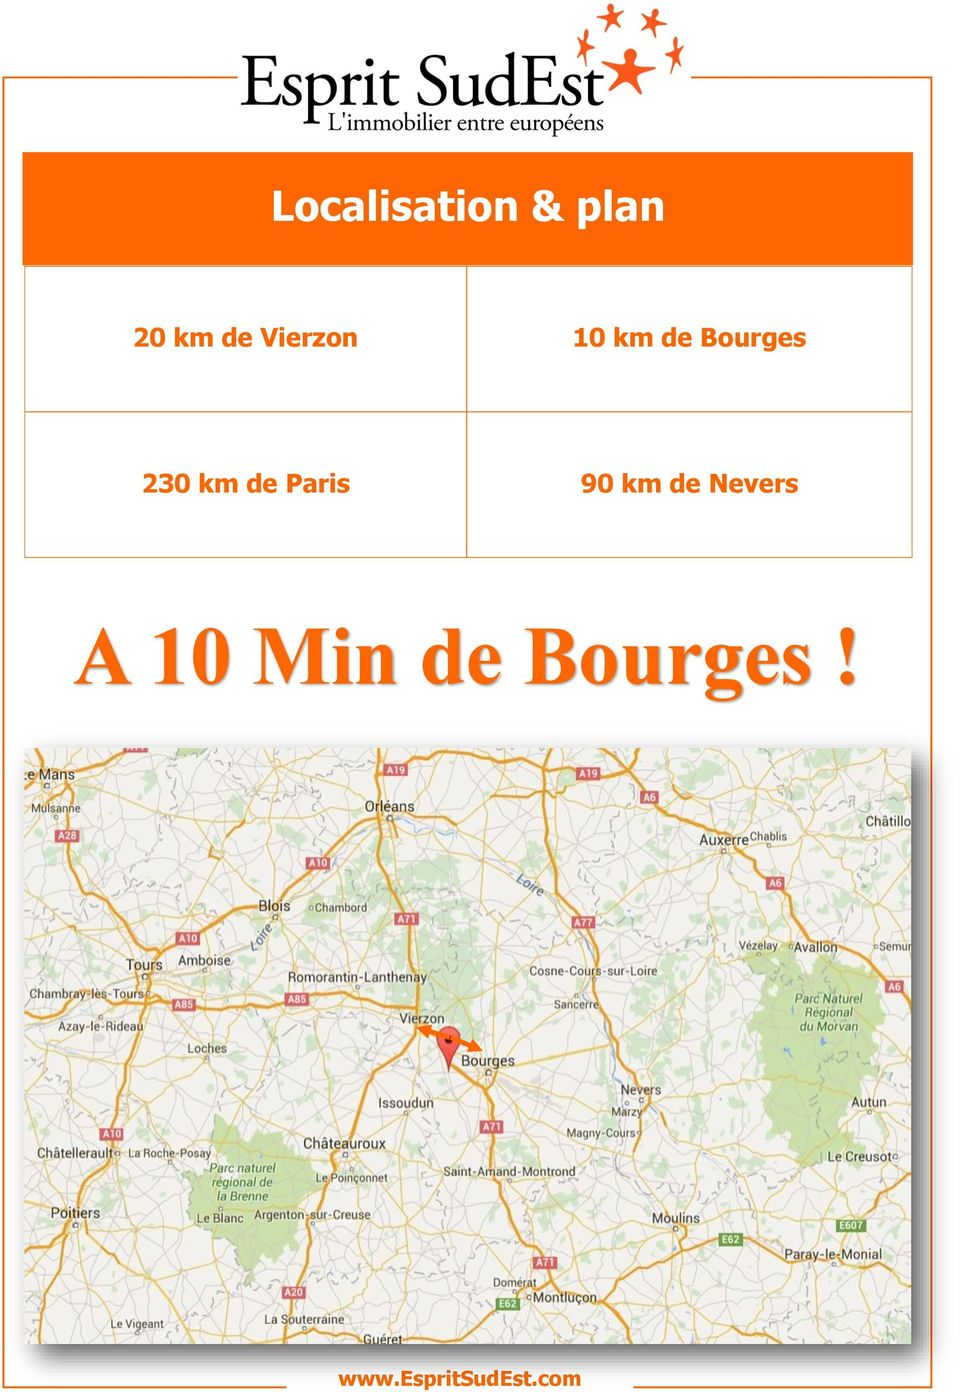 Bourges 230 km de Paris 90